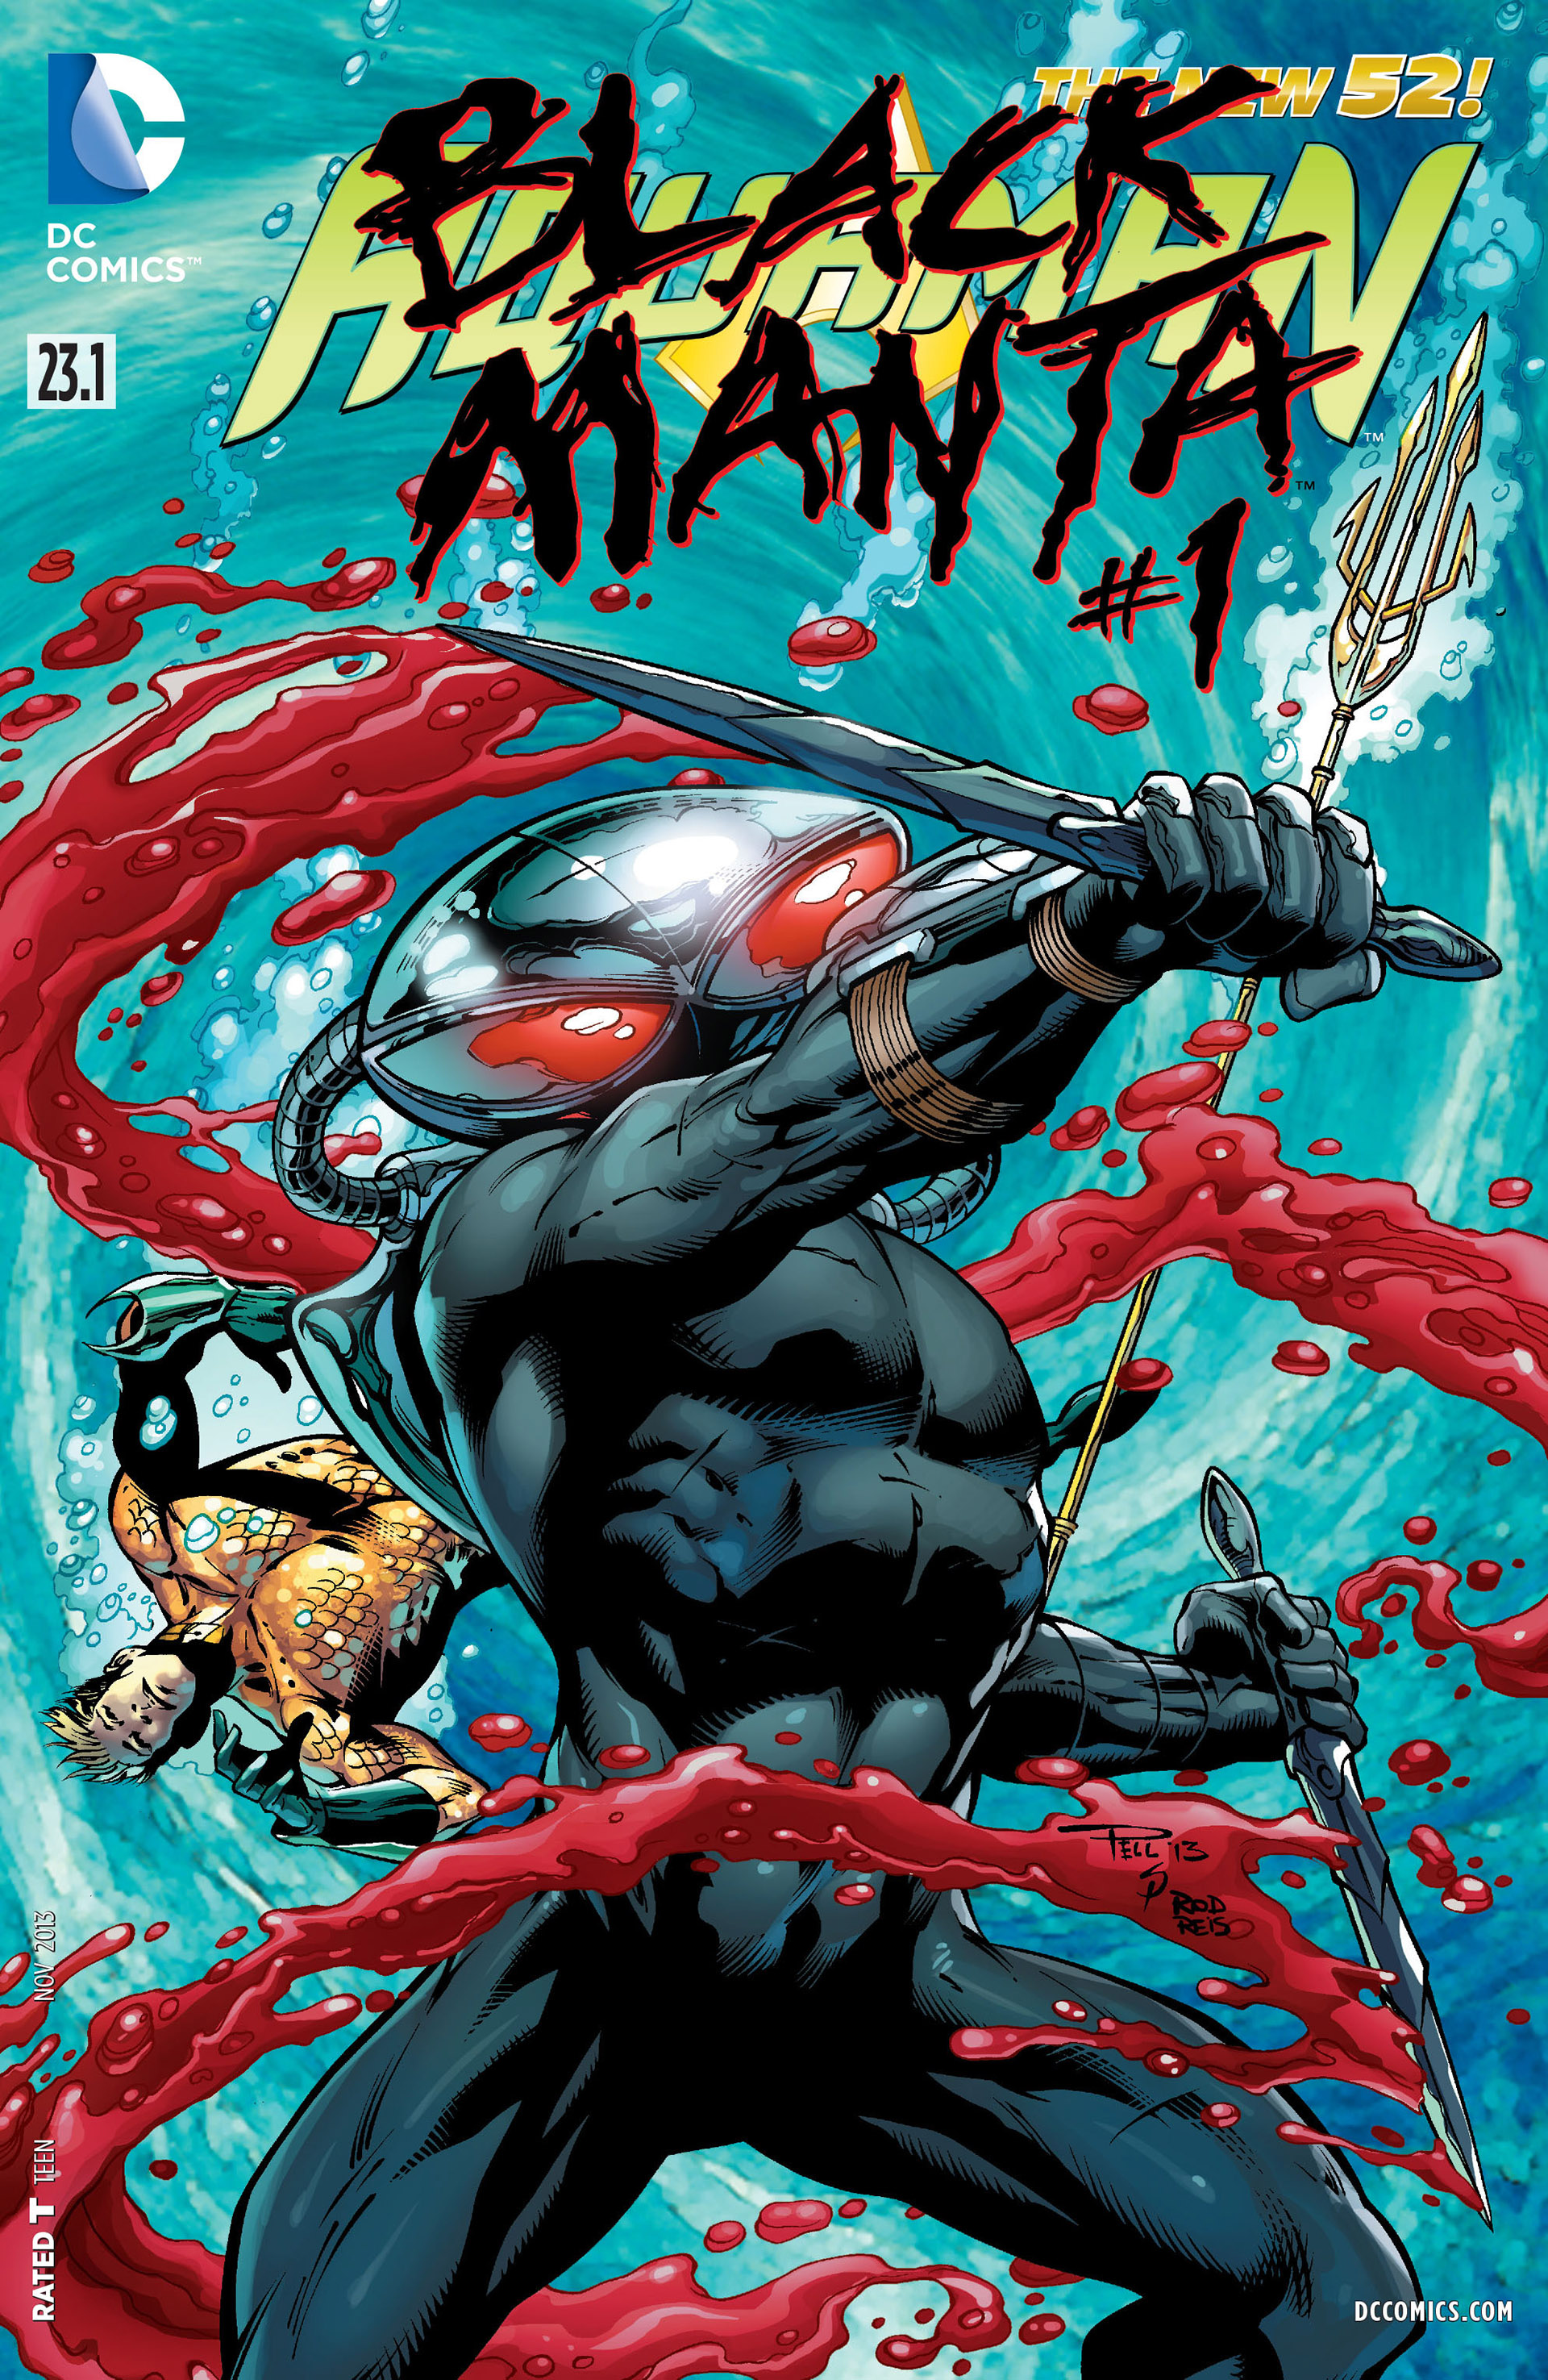 https://vignette.wikia.nocookie.net/comicdc/images/2/22/Aquaman_Vol_7_23.1_Black_Manta.jpg/revision/latest?cb=20140131195709&path-prefix=es